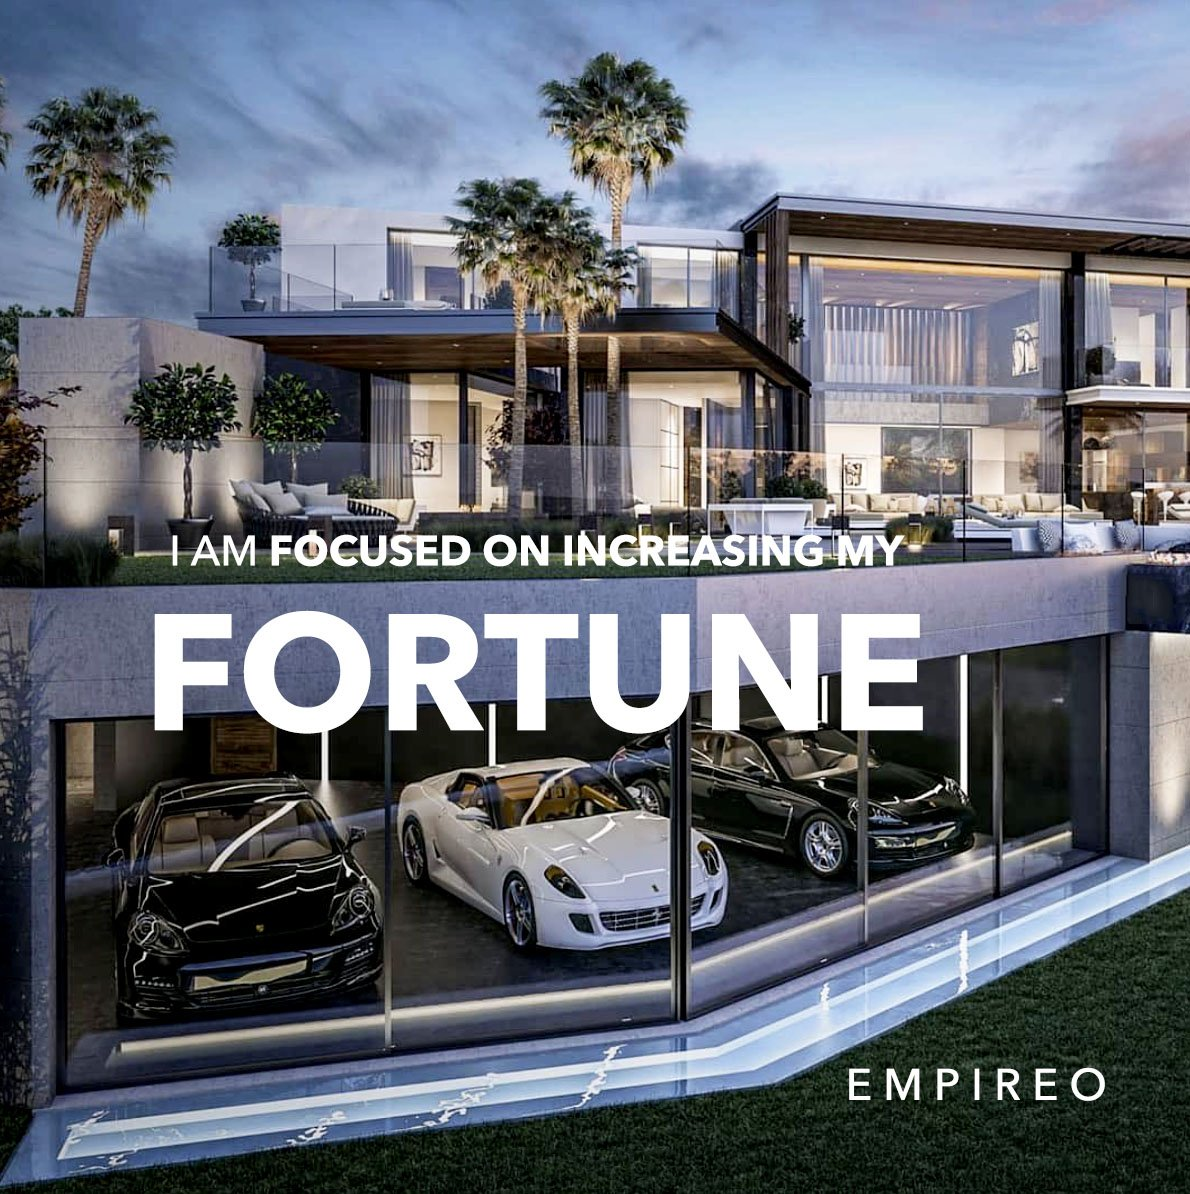 """I am #FOCUSED on increasing my #FORTUNE👌🔝  """"QUANTUM LEAP TO MILLIONAIRE""""💰💎 ▶️ I want to know more about the program https://empireoquantumleap.com/  #MILLIONAIREMINDSET #LUXURYLIFE #EXPLOITINGYOURMENTALMINE"""